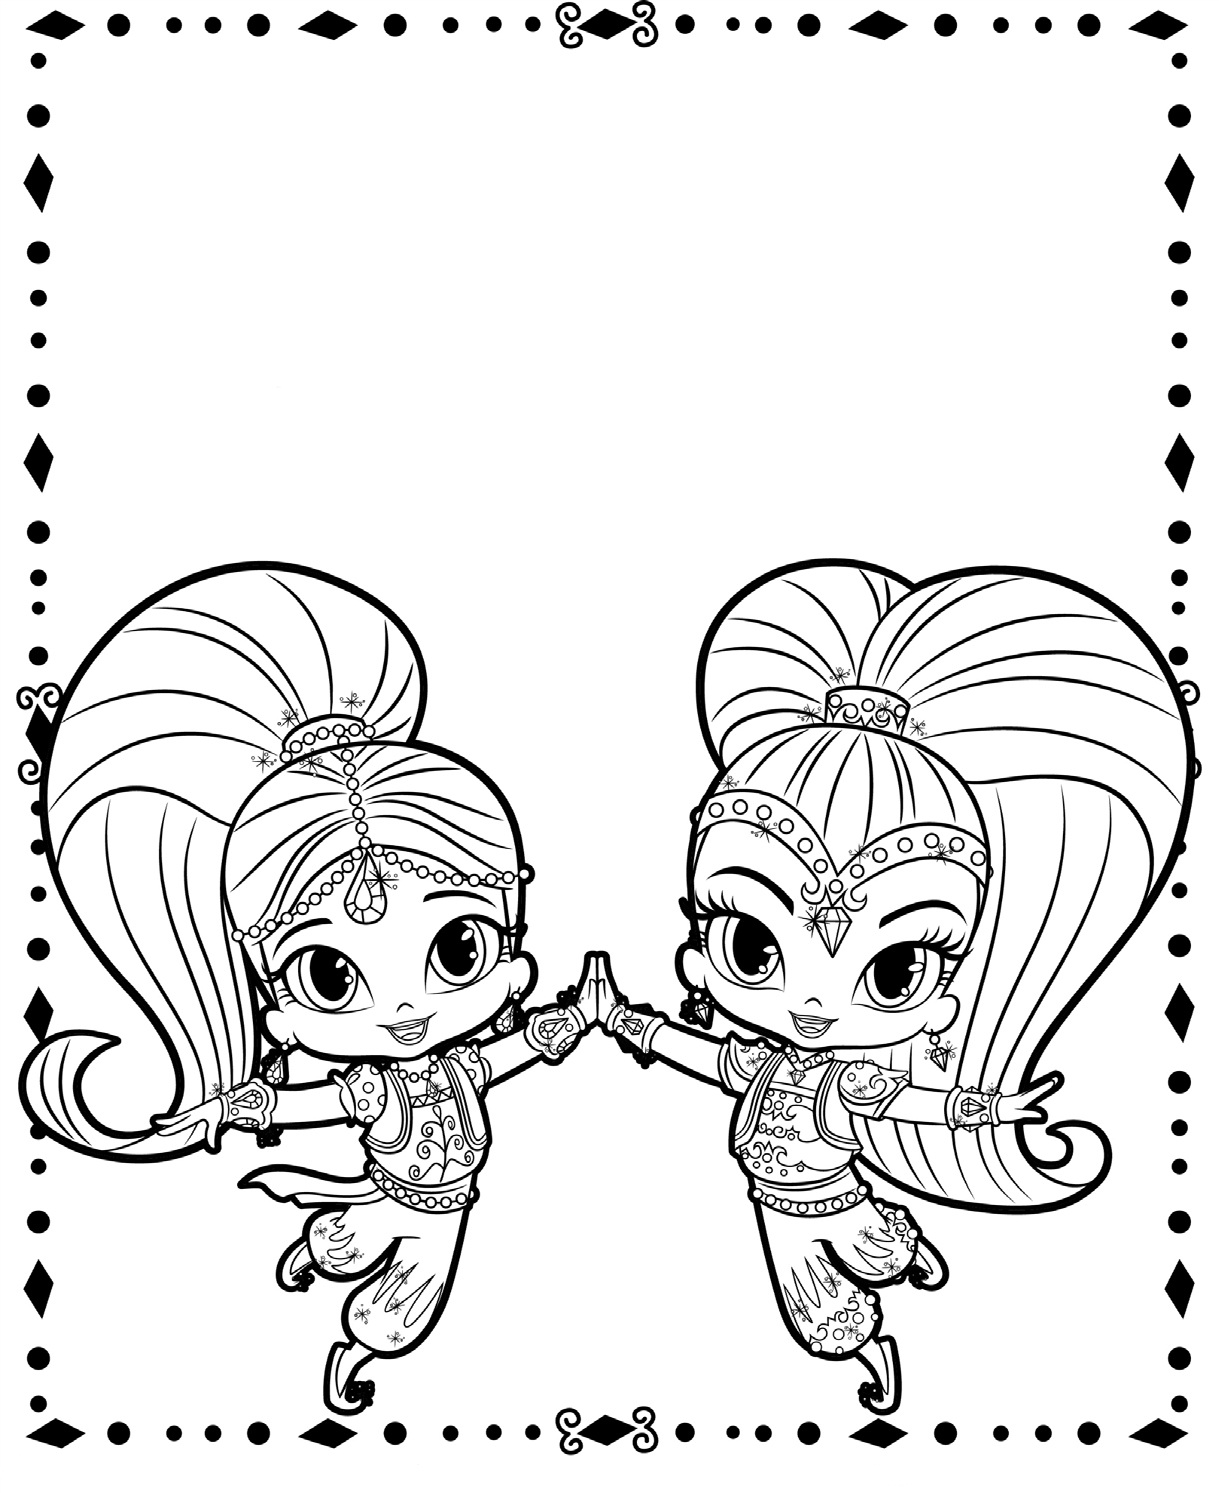 This is a graphic of Selective shimmer and shine coloring book